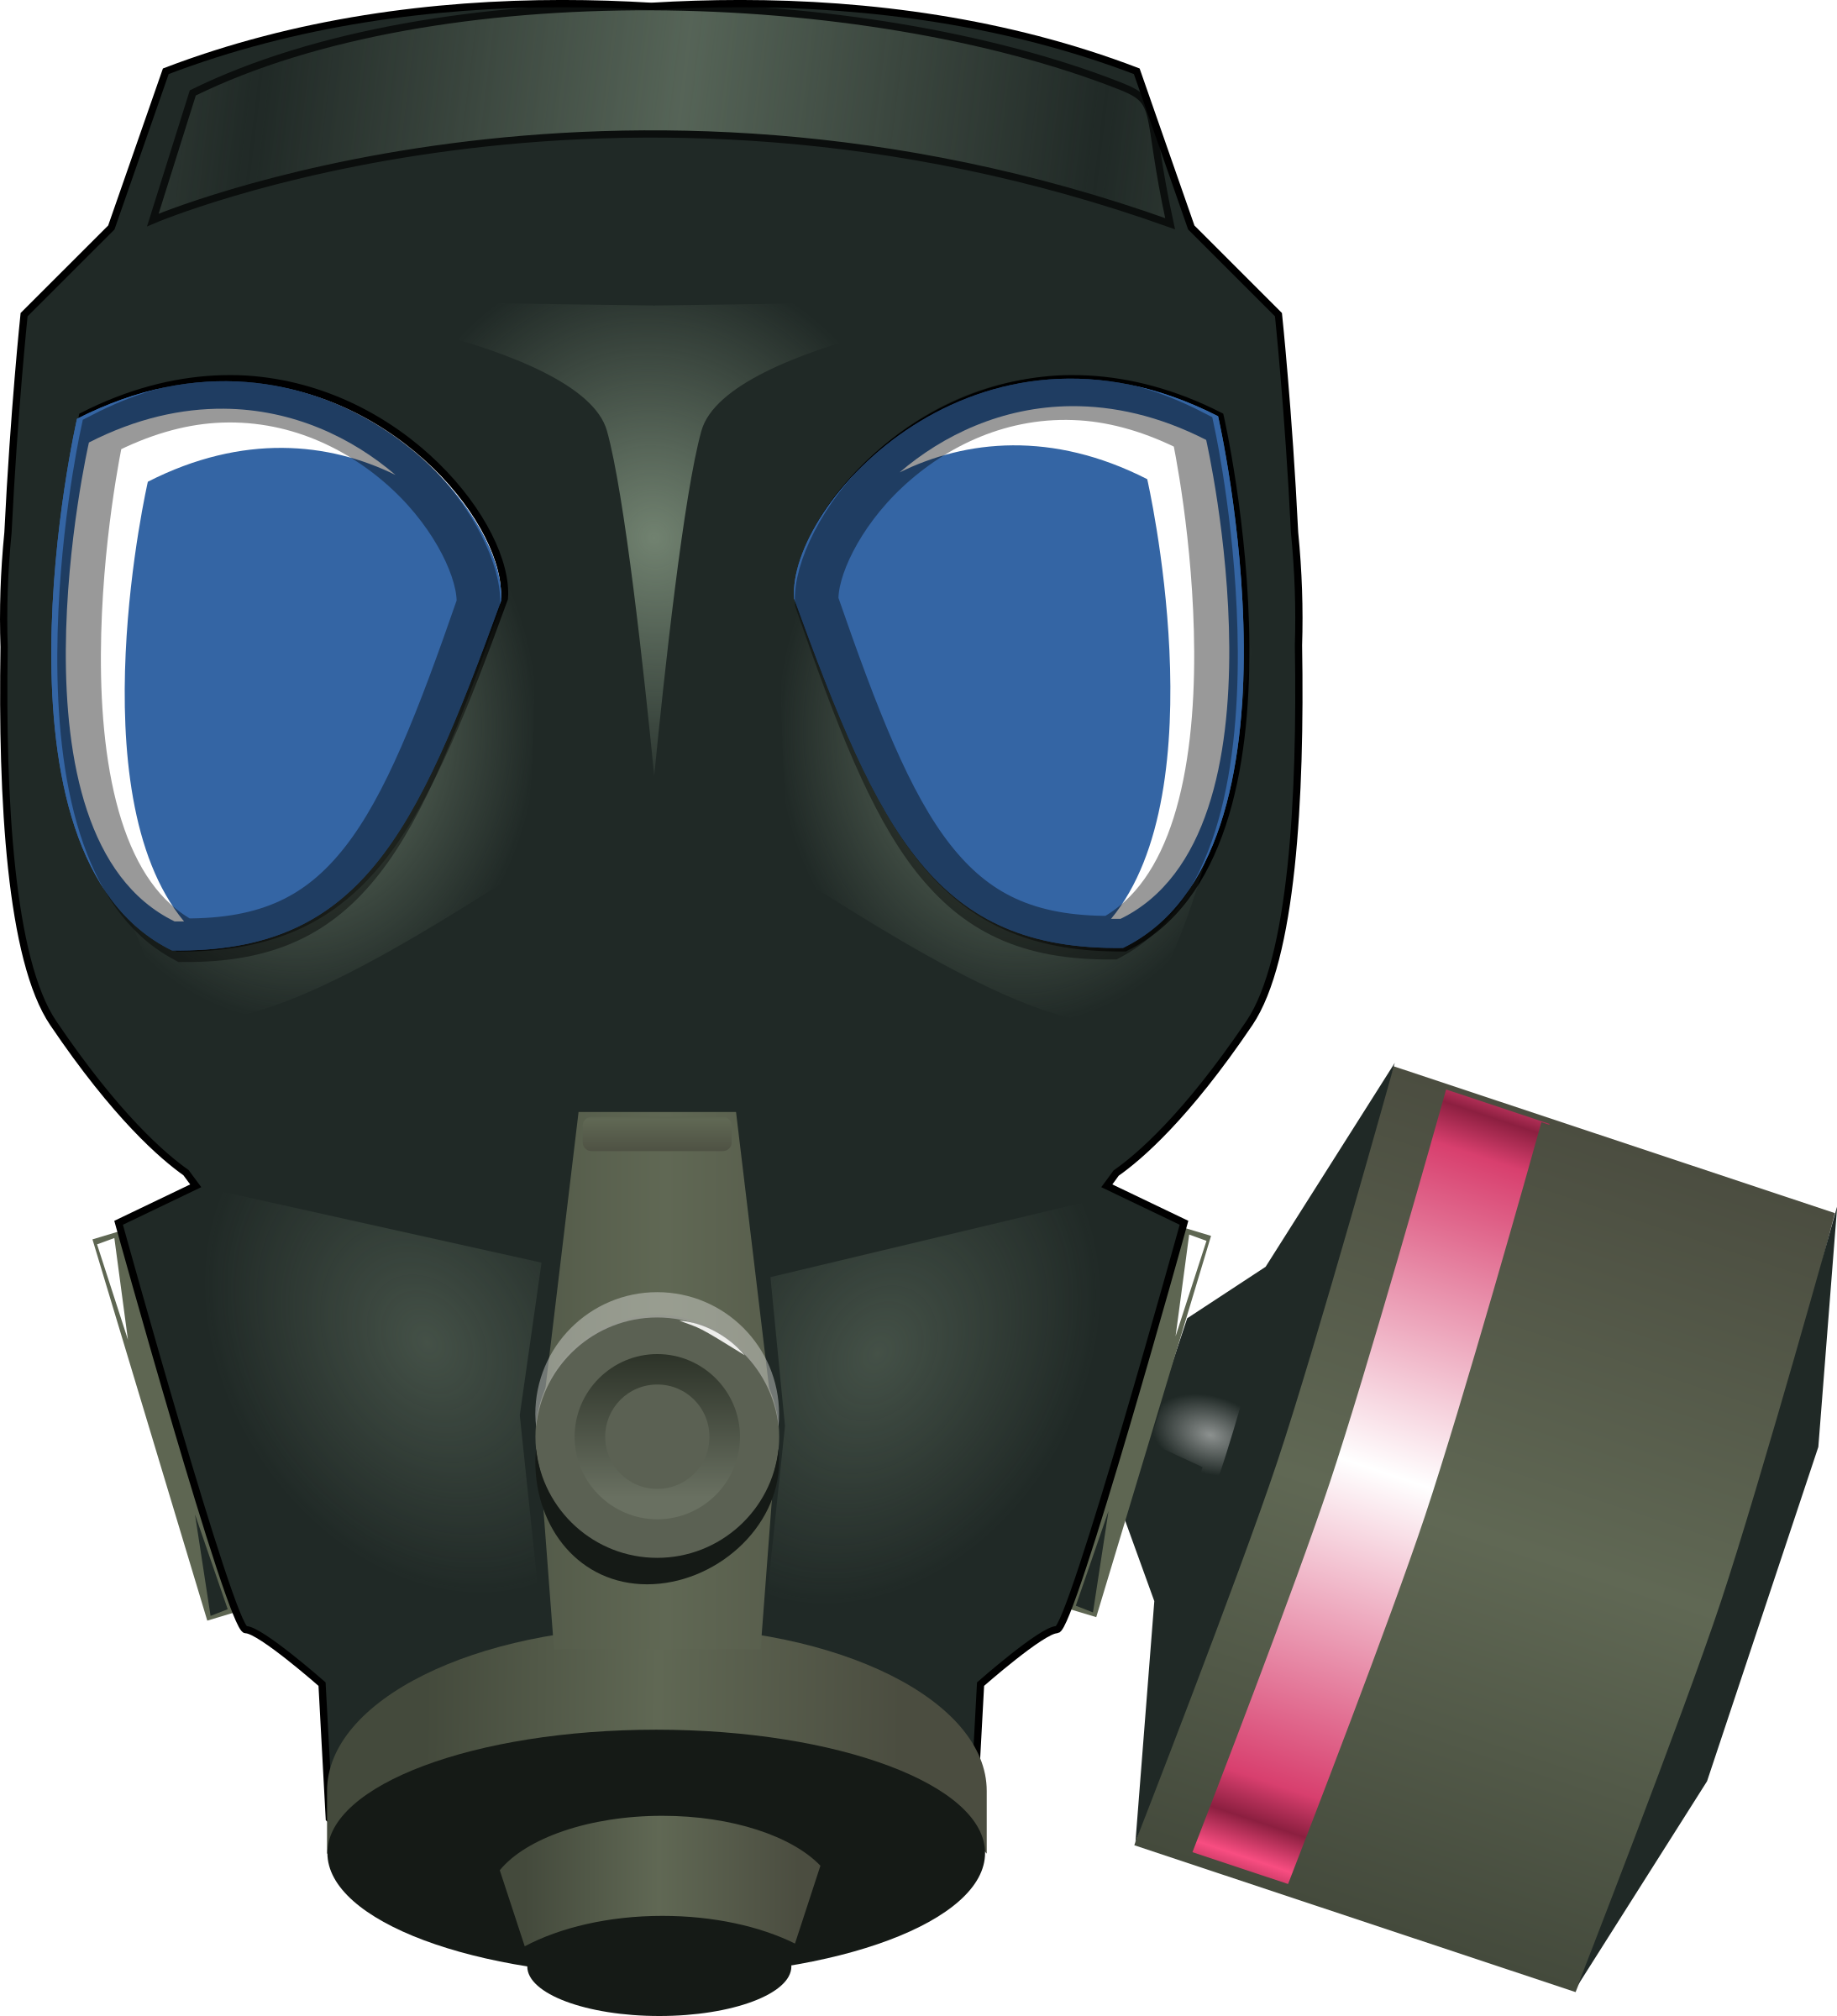 Gas icons png free. Mask clipart pilot